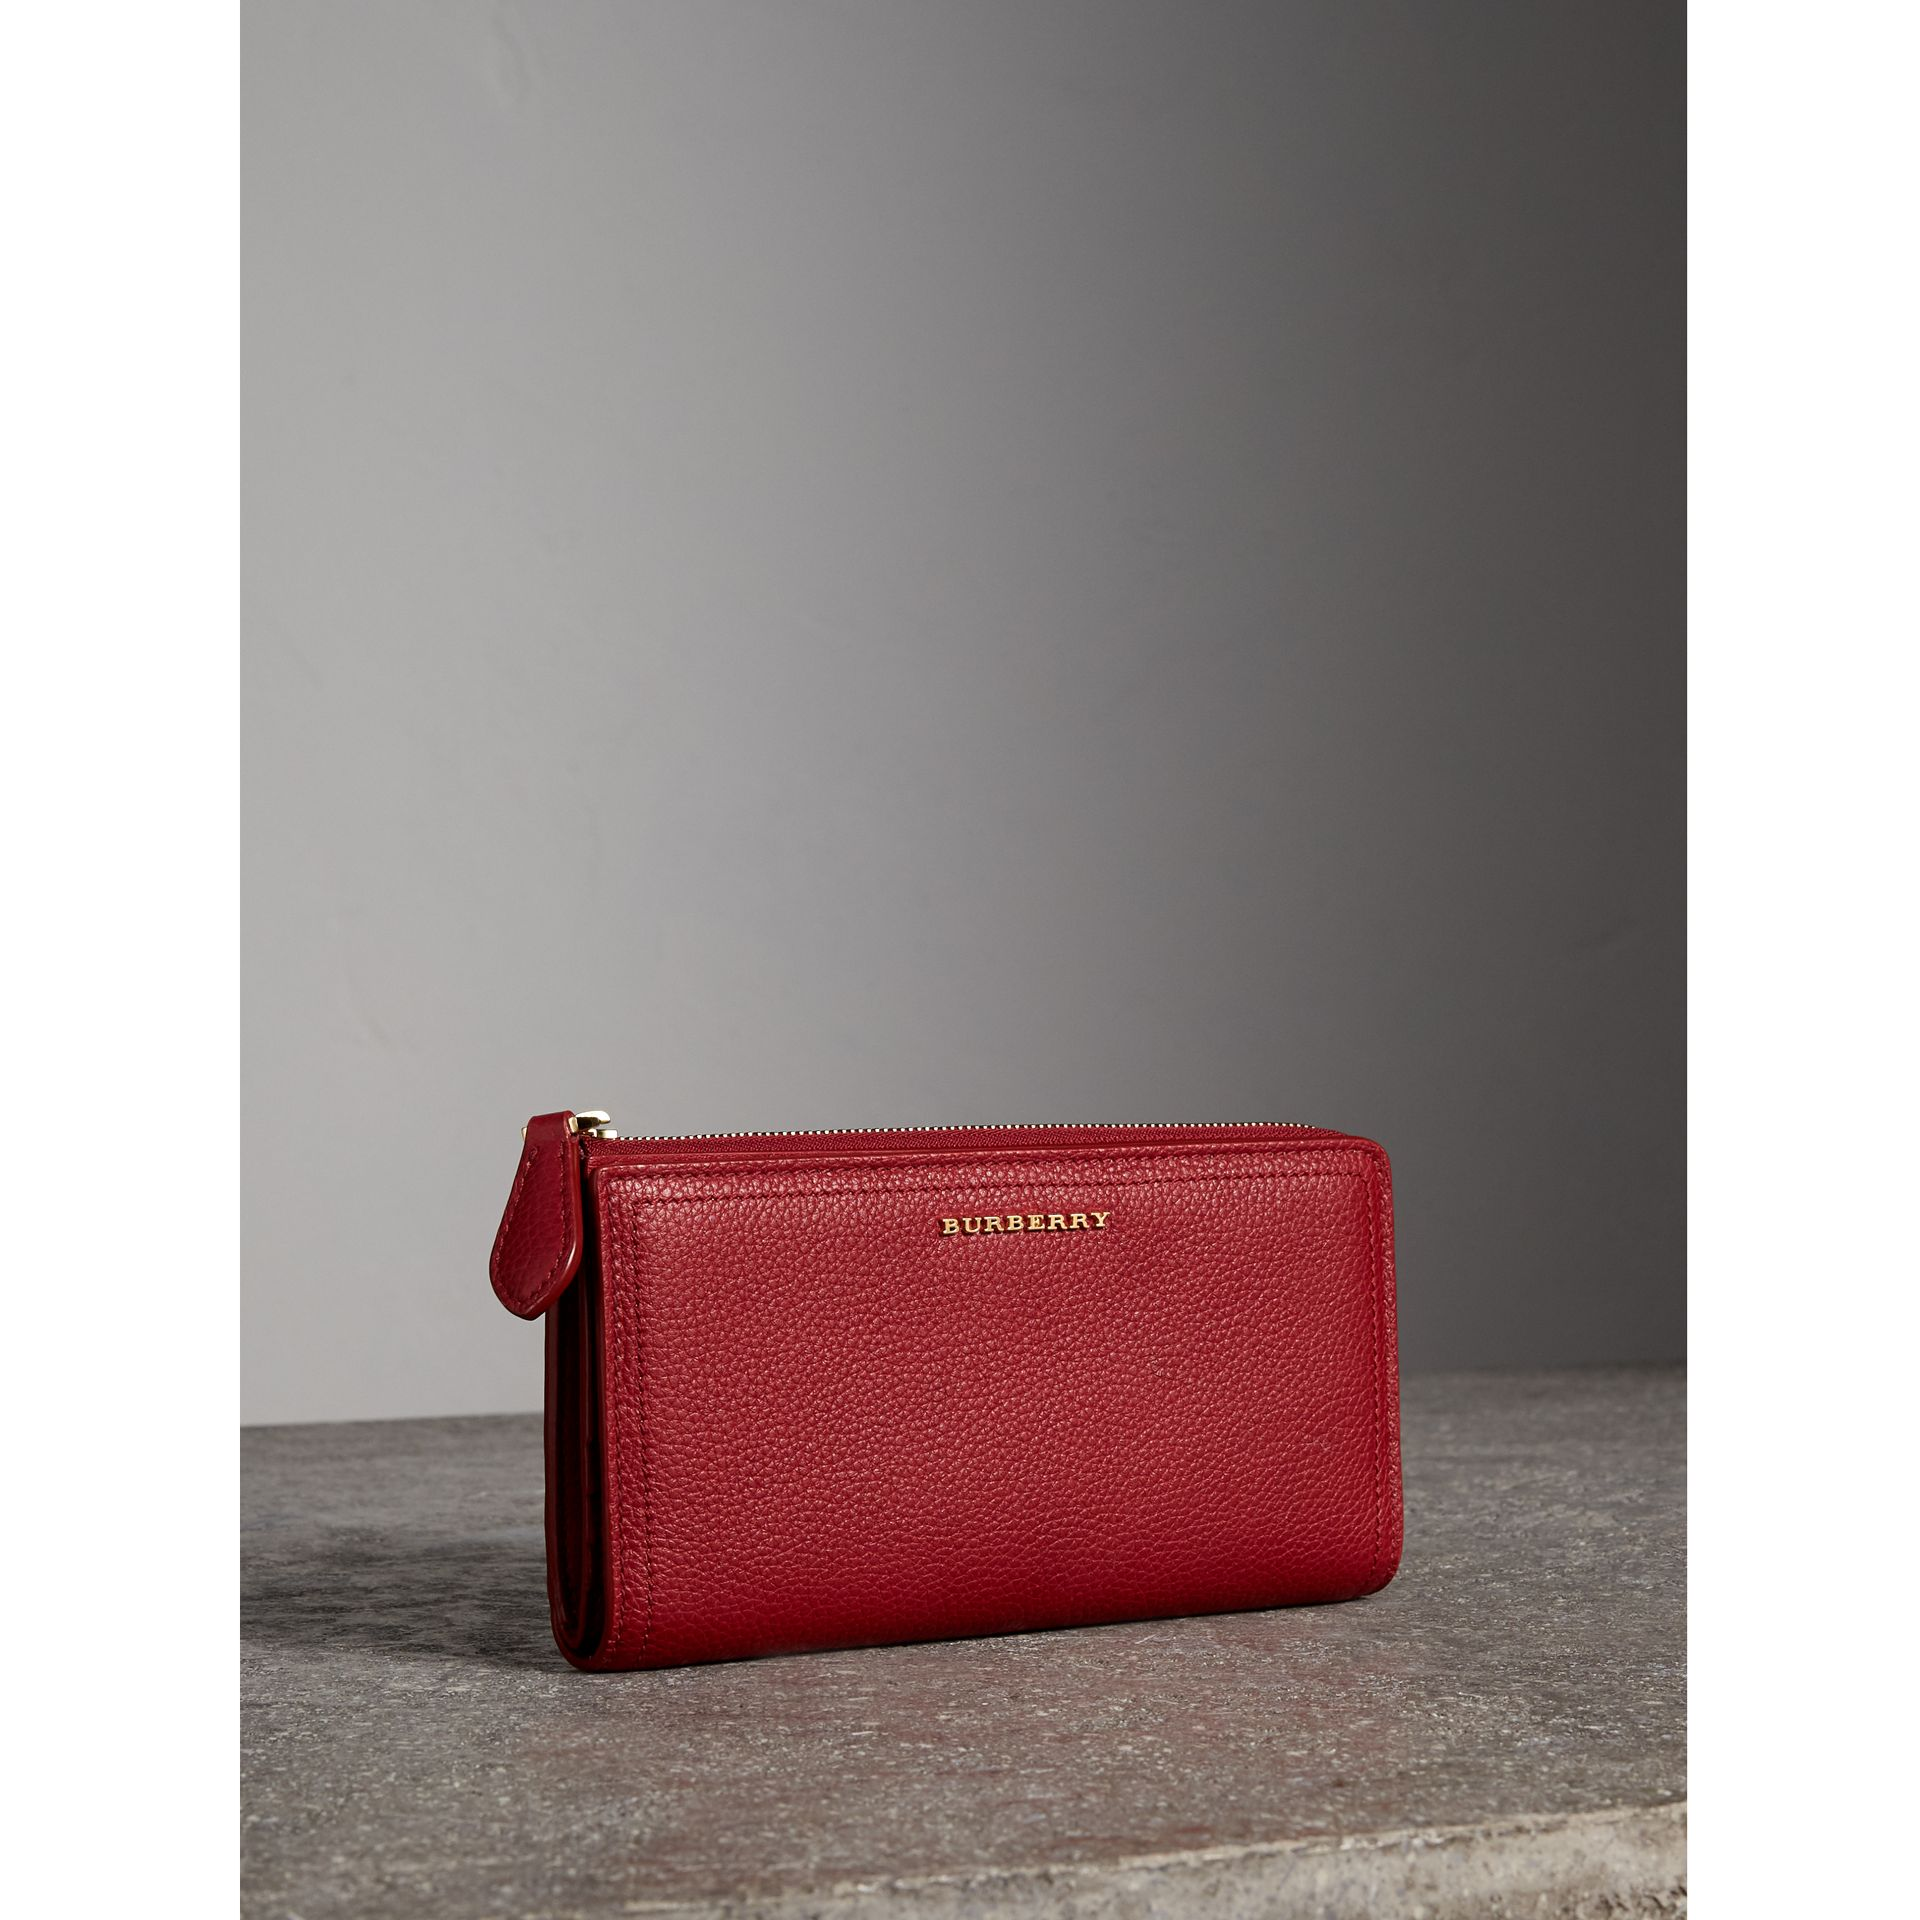 Grainy Leather Ziparound Wallet in Parade Red - Women | Burberry Australia - gallery image 0